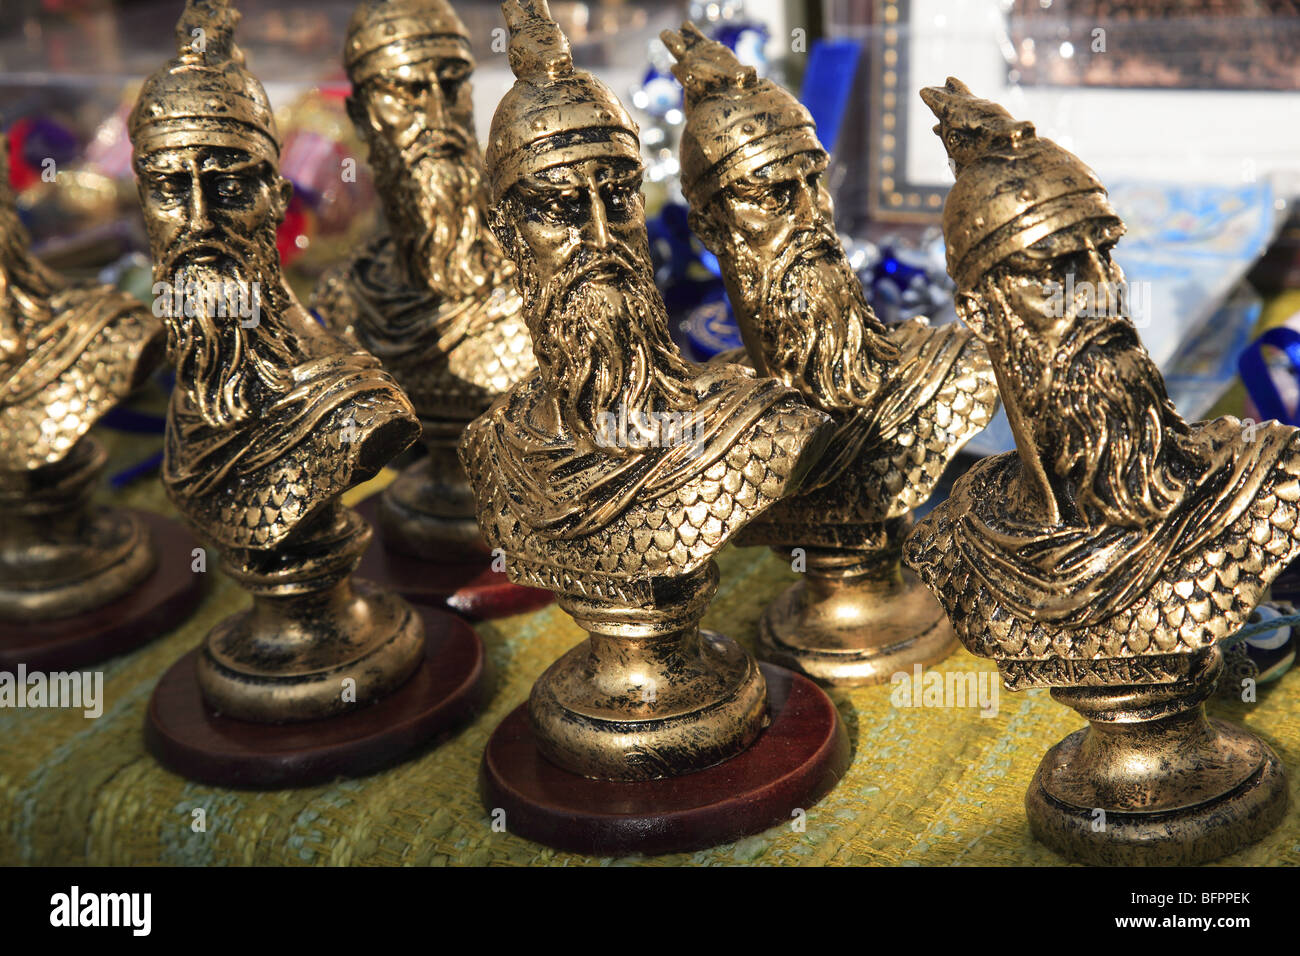 Souvenir busts of Skanderbeg, the national hero of Albania,  on a stall in Kruja, Albania - Stock Image